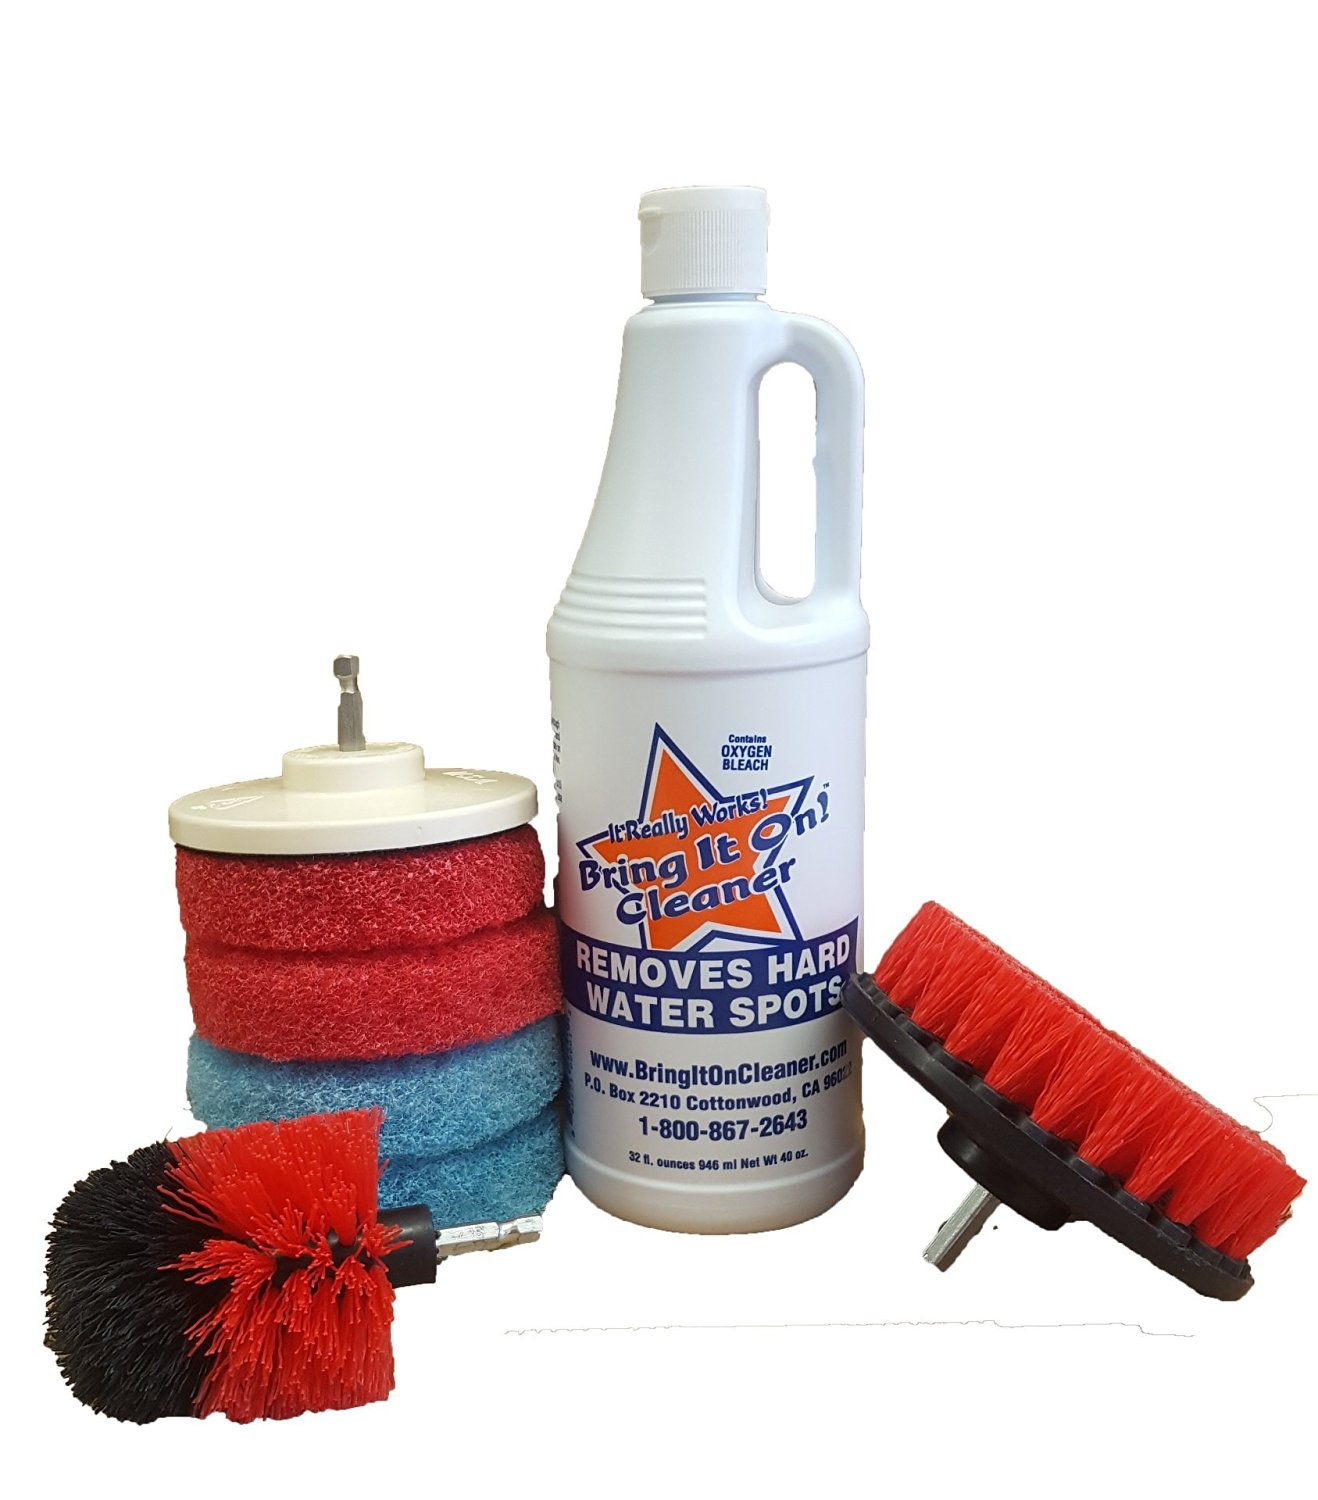 Water Spot Remover, Plus Drill Brushes and Pads, Home Deep Cleaning Kit for Kitchen and Bathroom, Clean Tile and Grout, Cleaning Brush For Drill, Drill Scrub Brush, Drill Brush Attachment